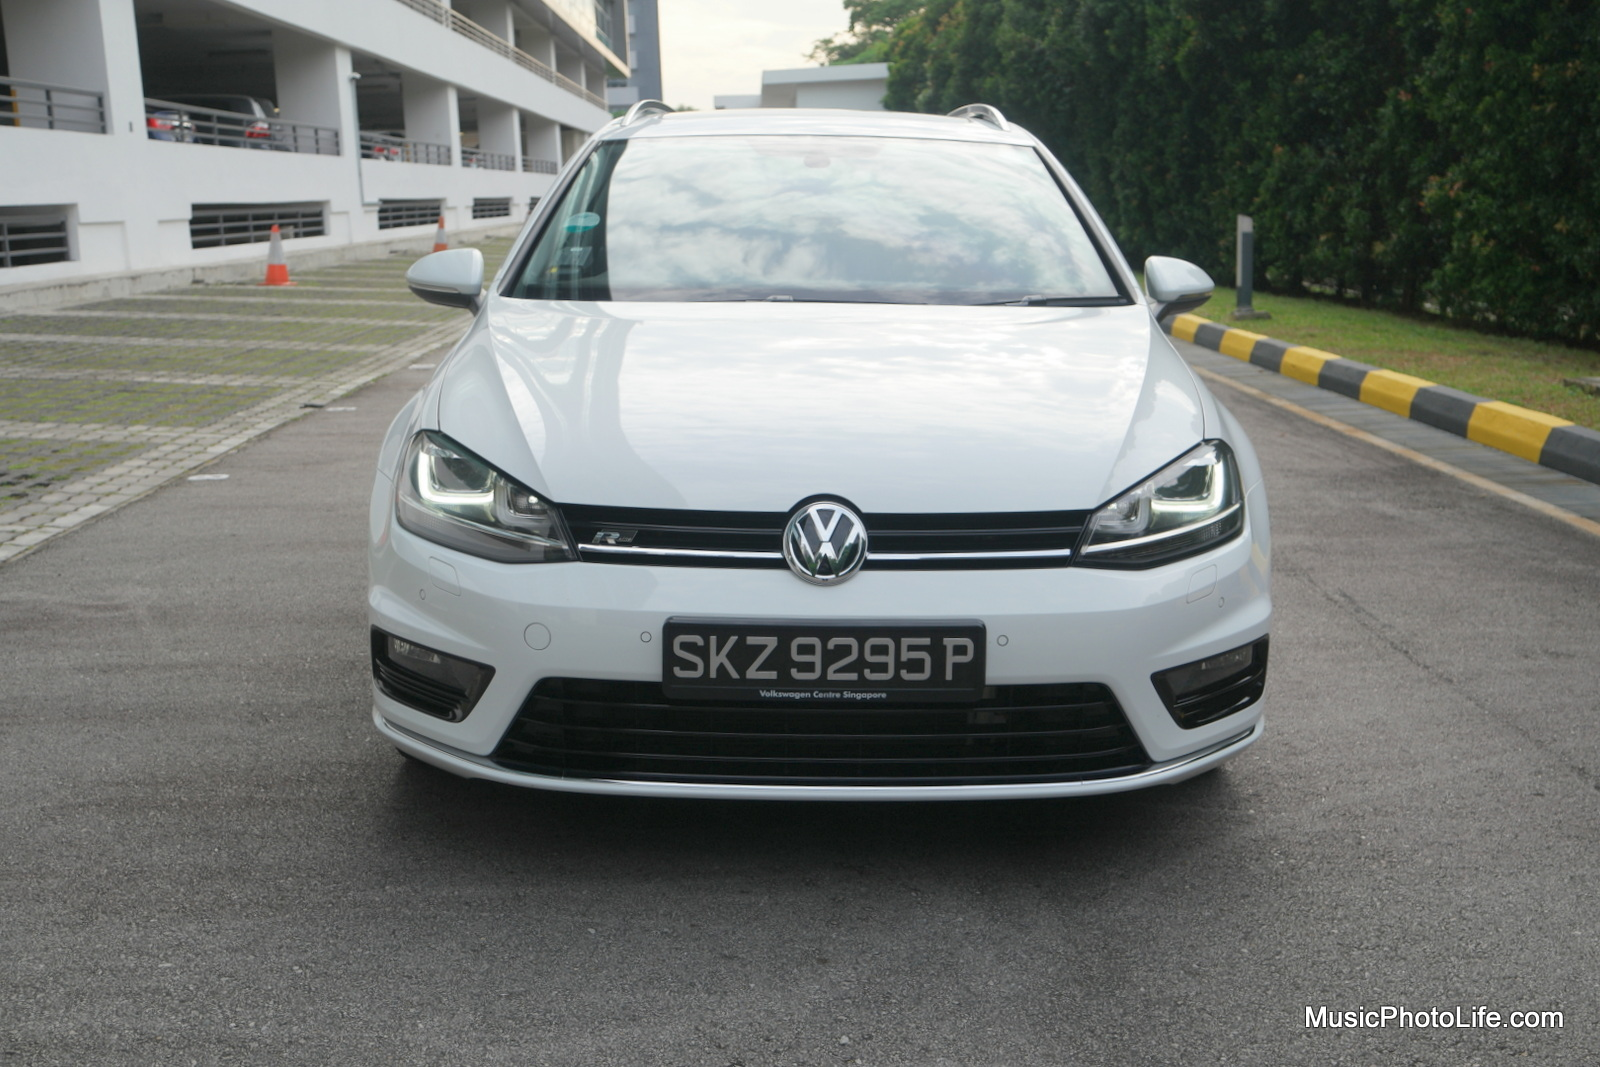 Volkswagen Golf Variant front view - review by musicphotolife.com